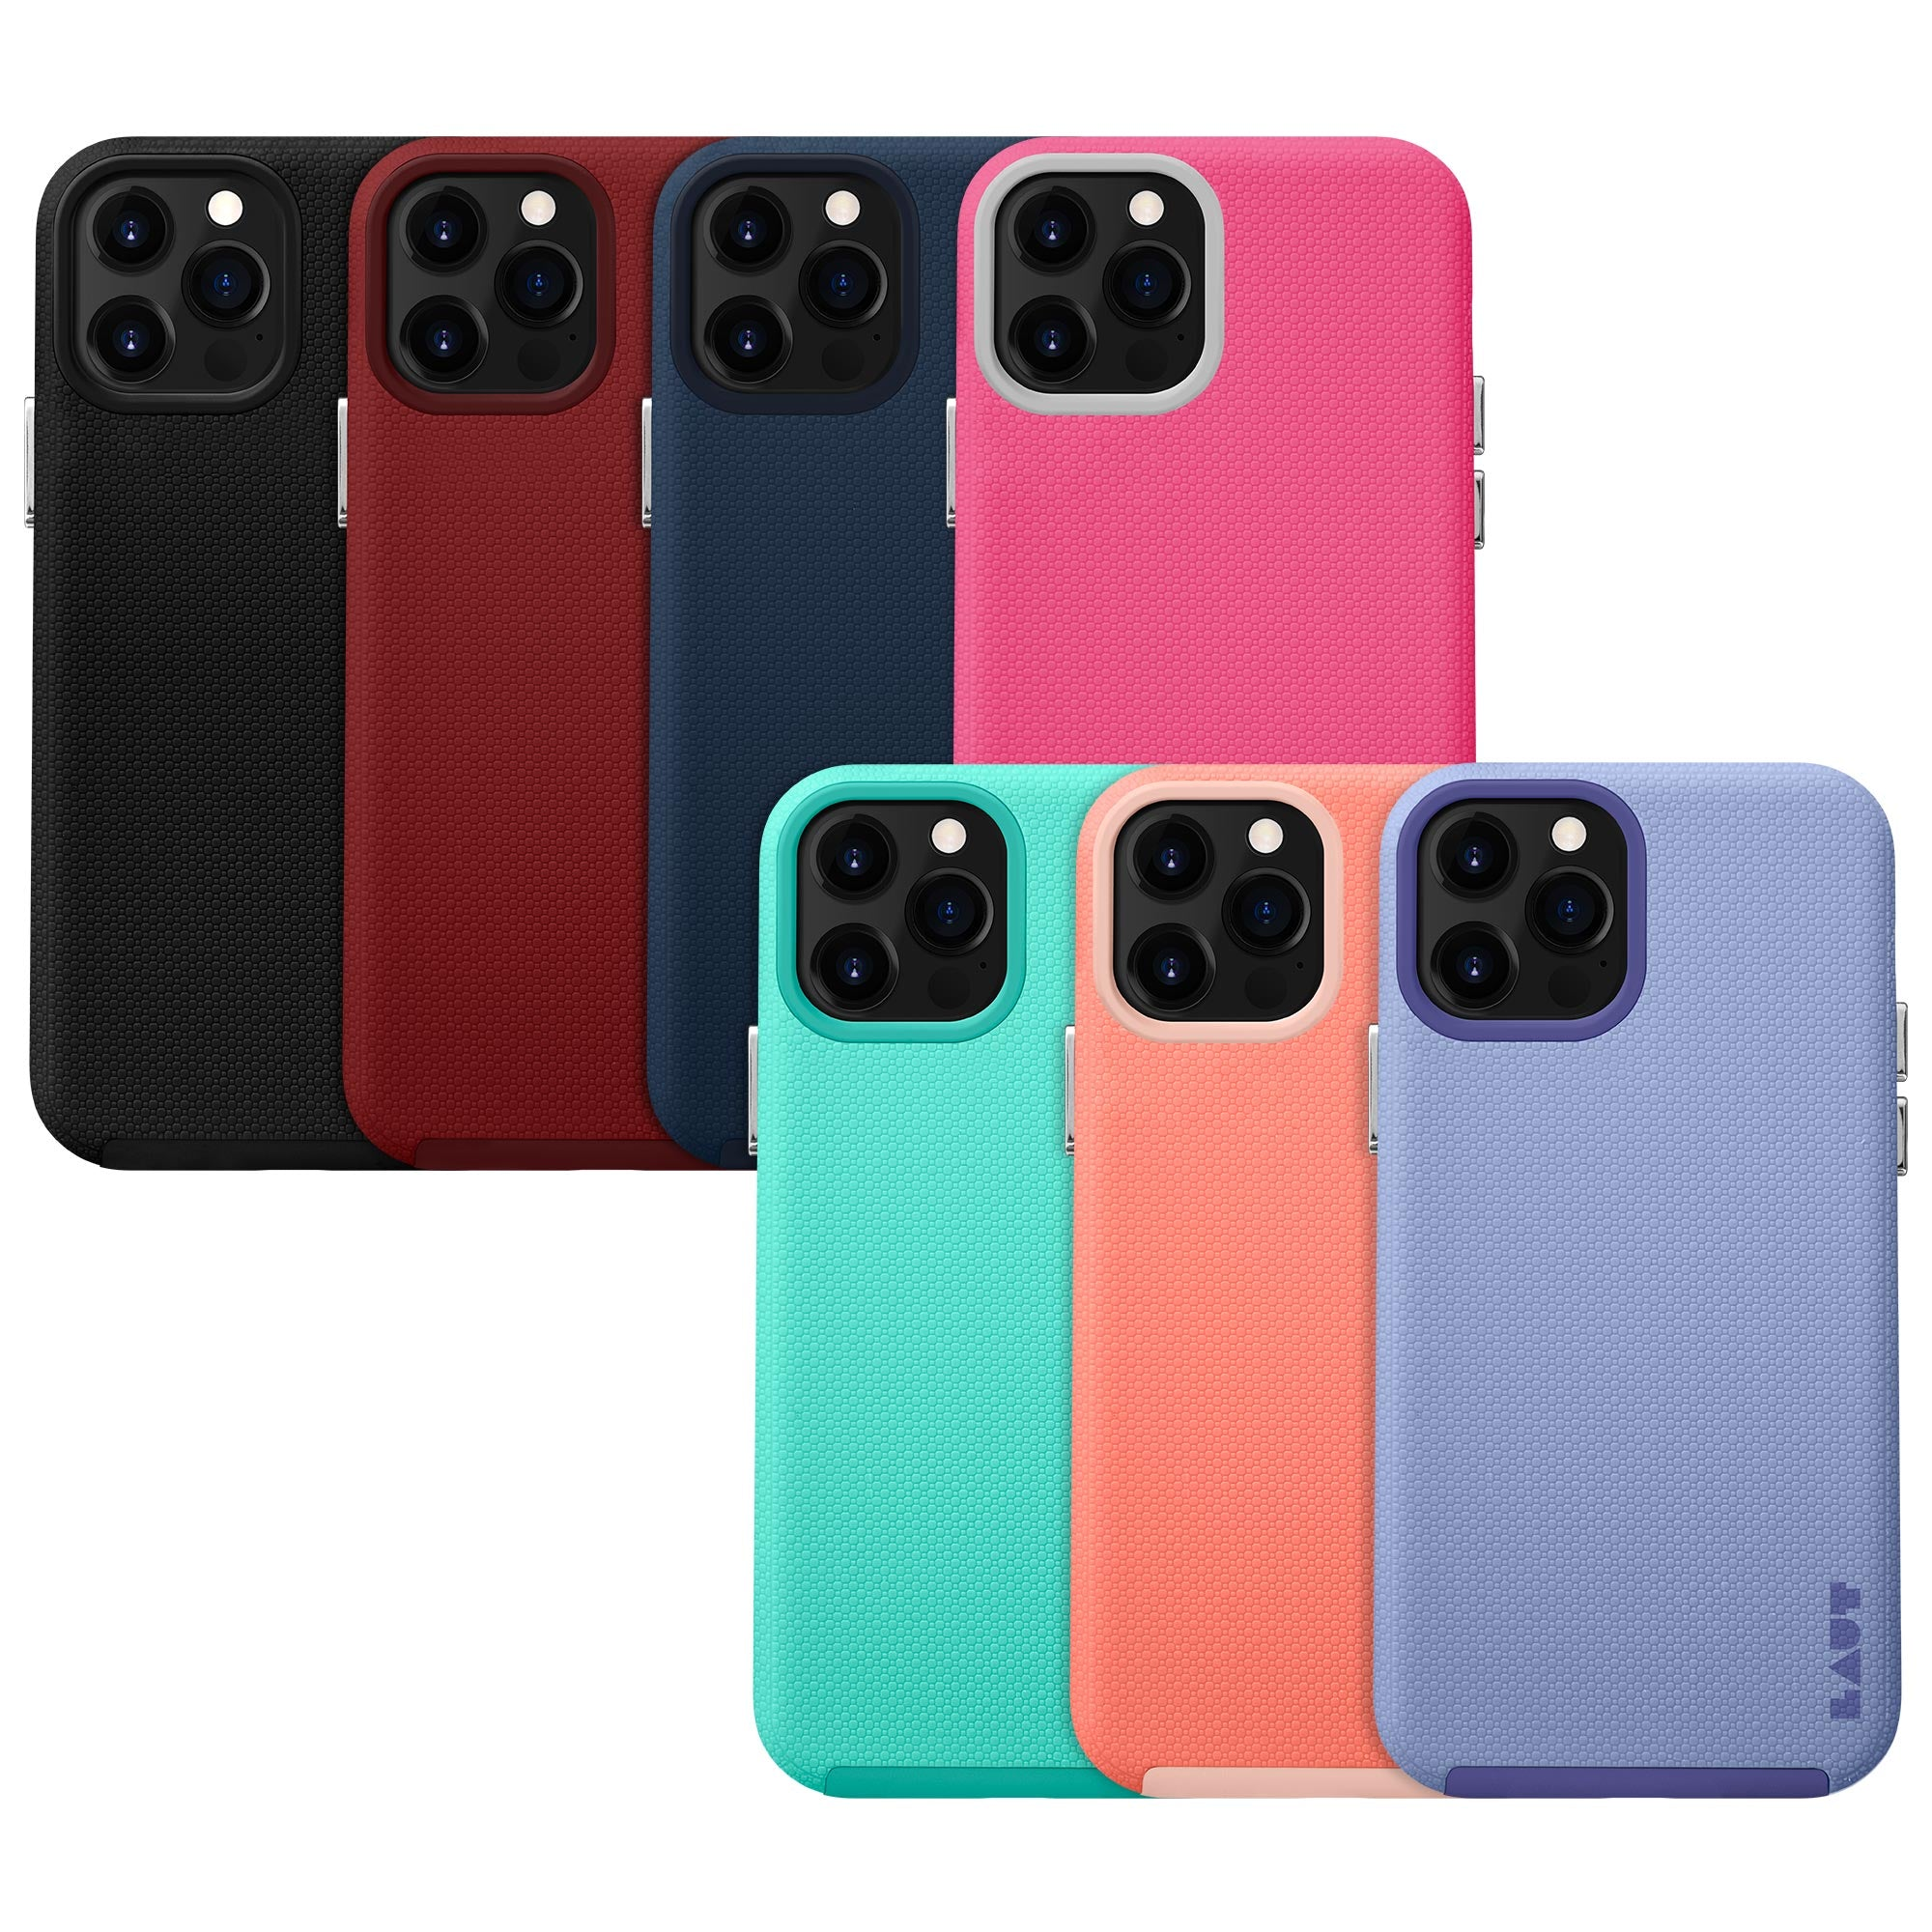 SHIELD case for iPhone 12 series